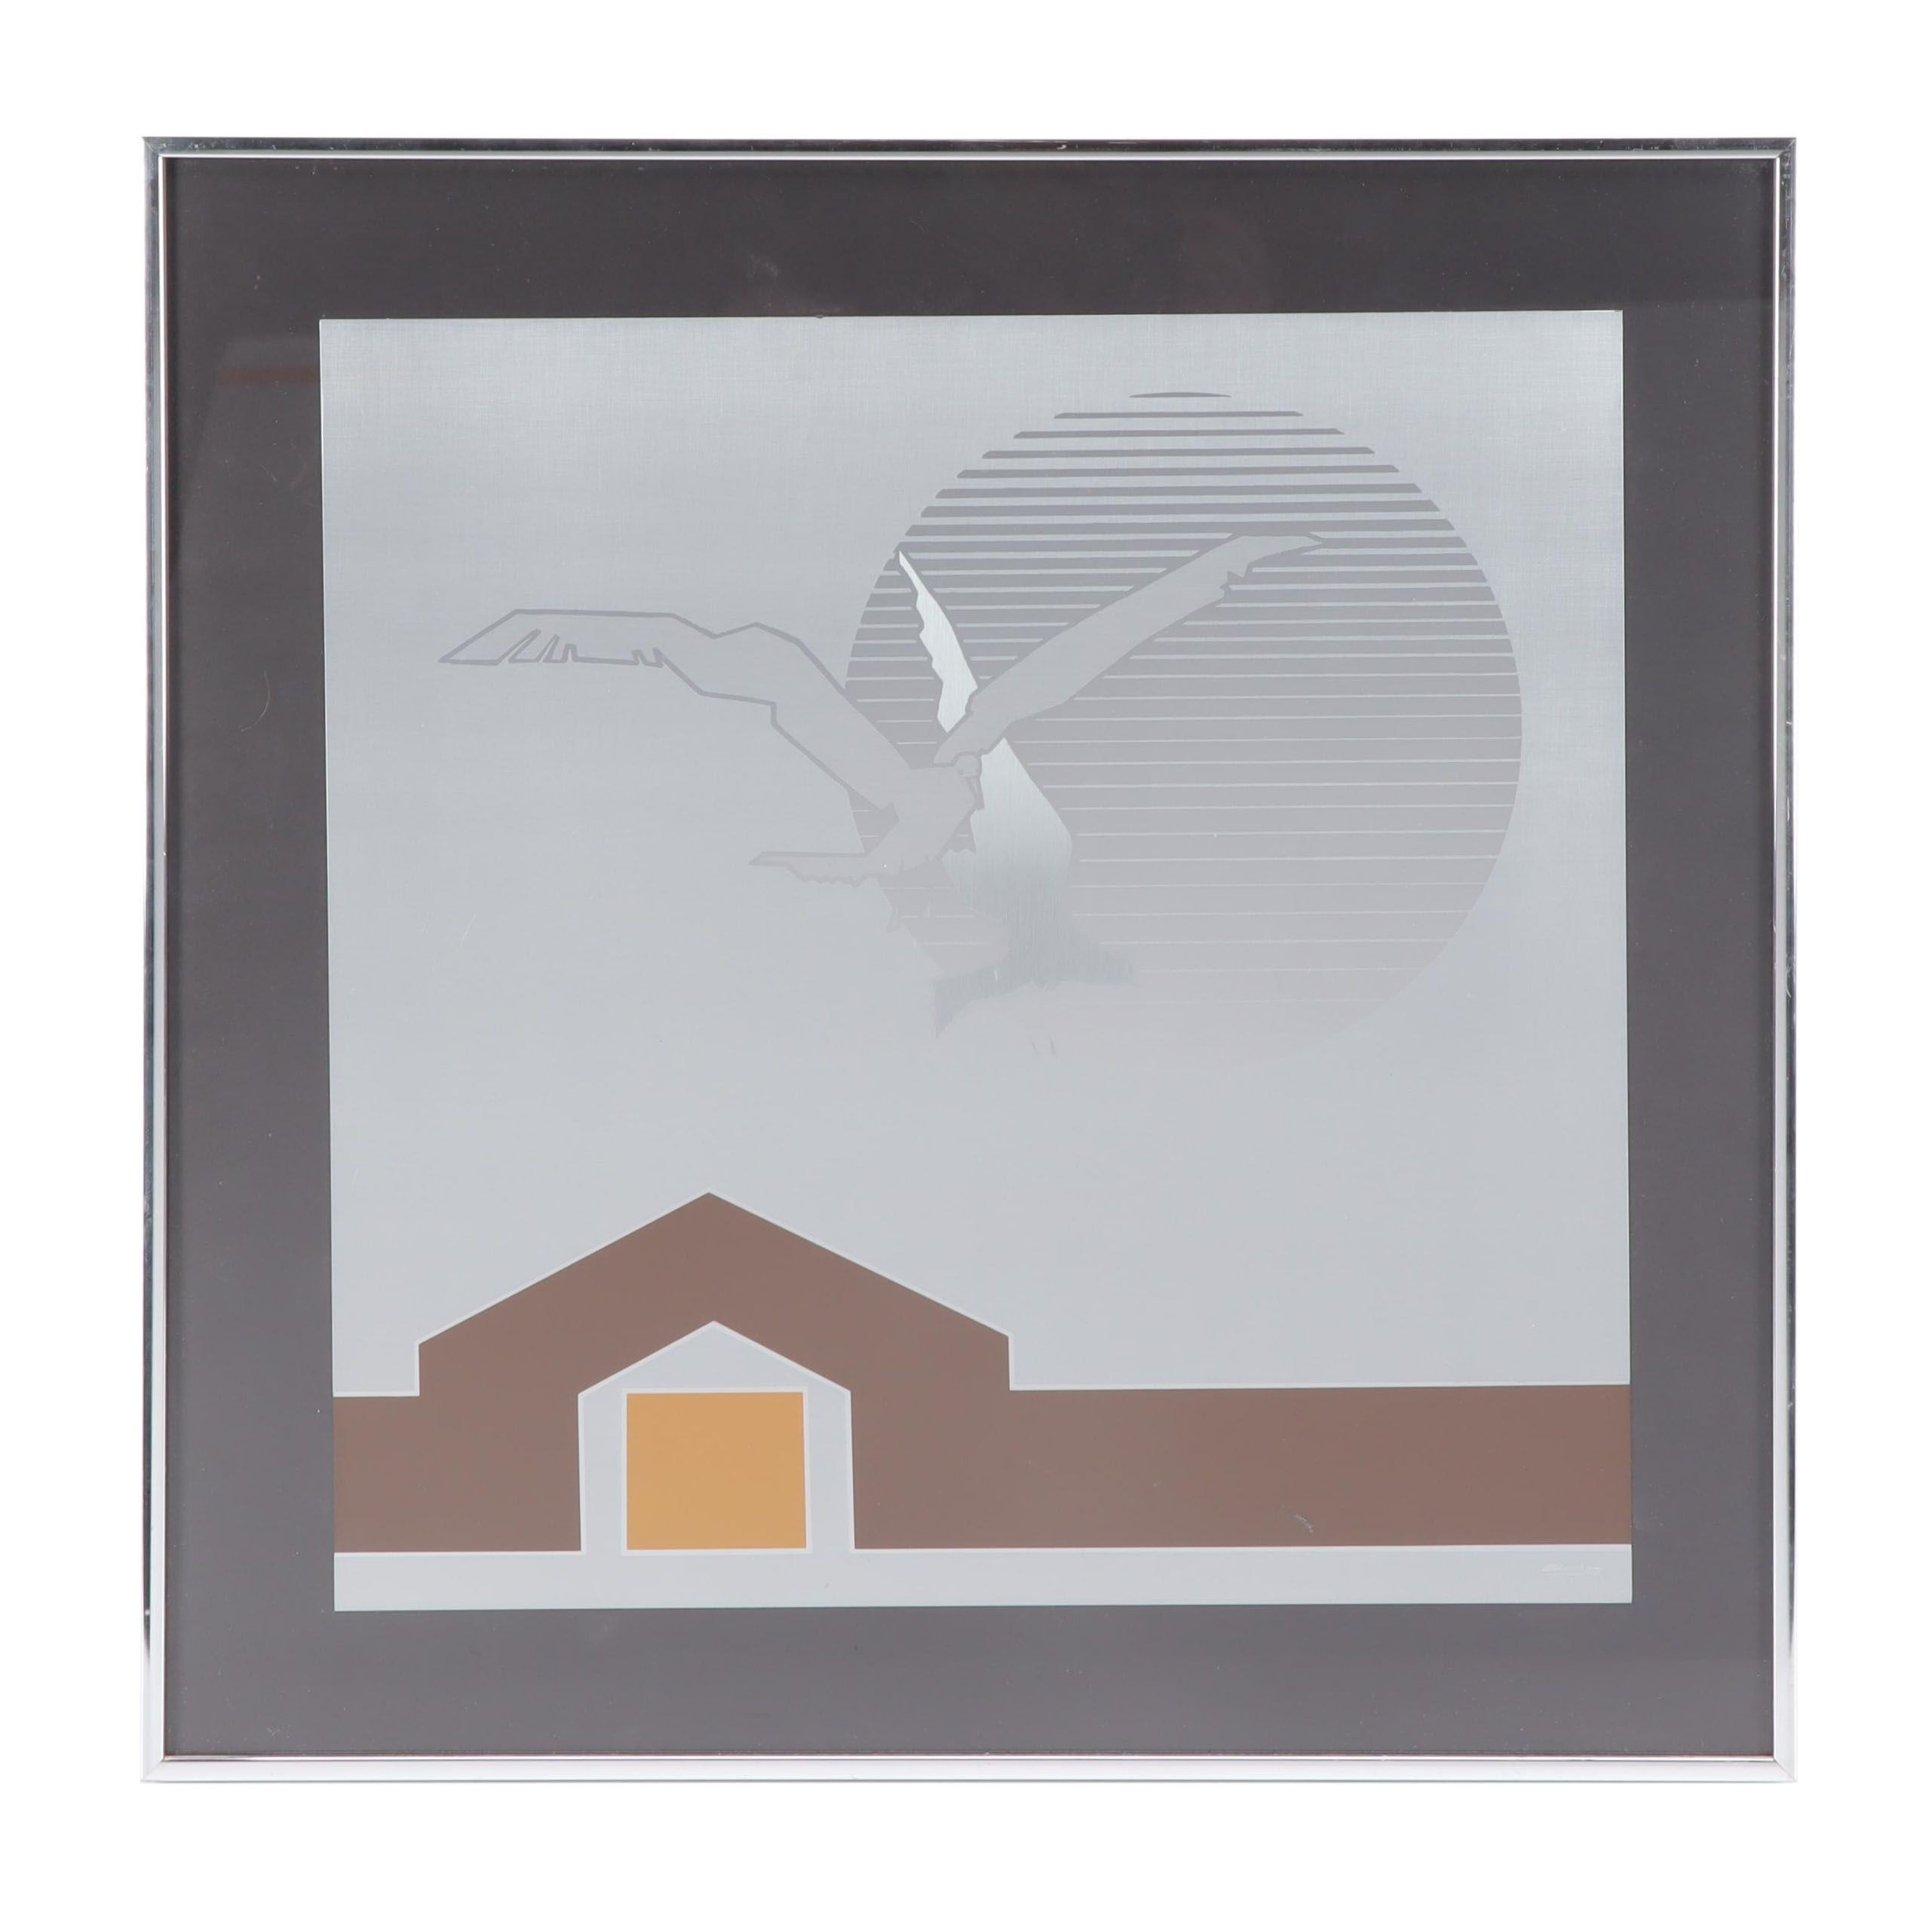 Framed Etched Metal Wall-hanging of Birds and House